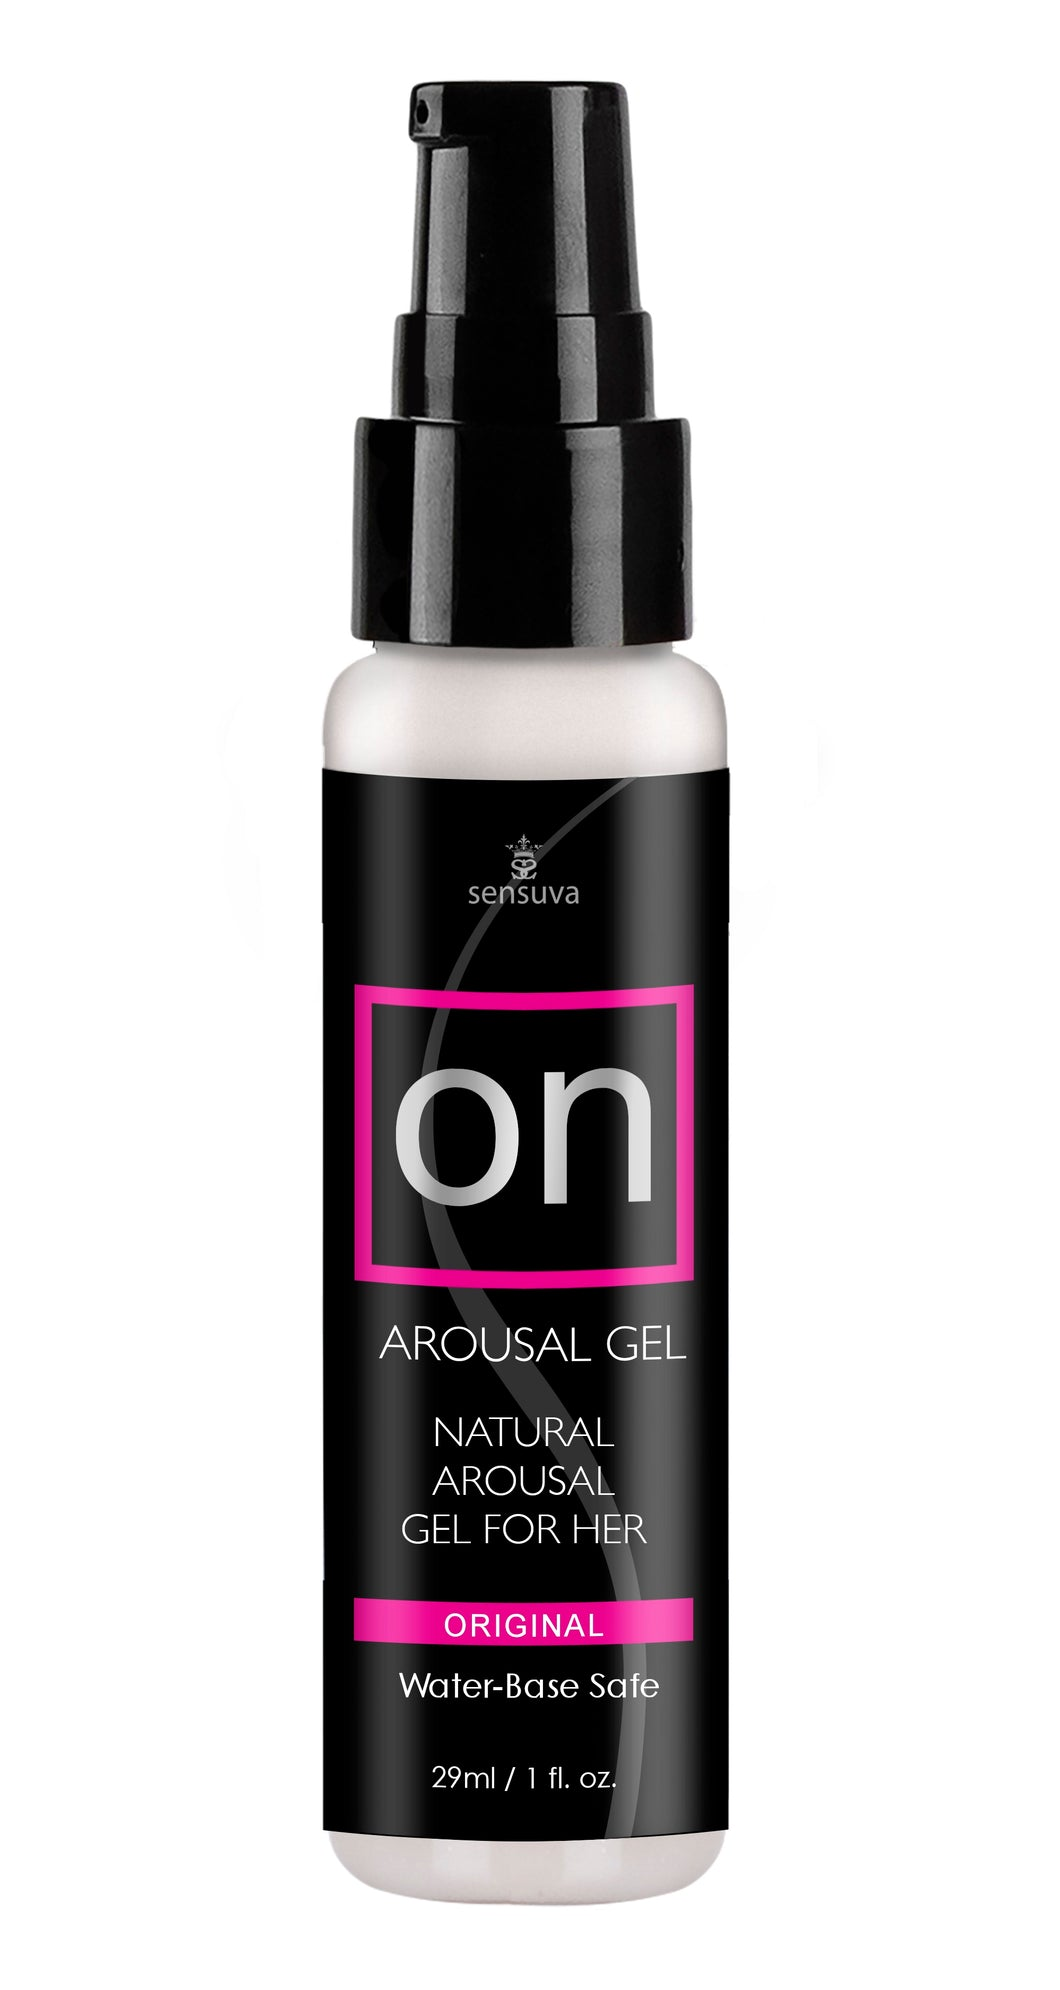 On Arousal Gel Original - 1 Fl. Oz. Bottle - My sheree and More